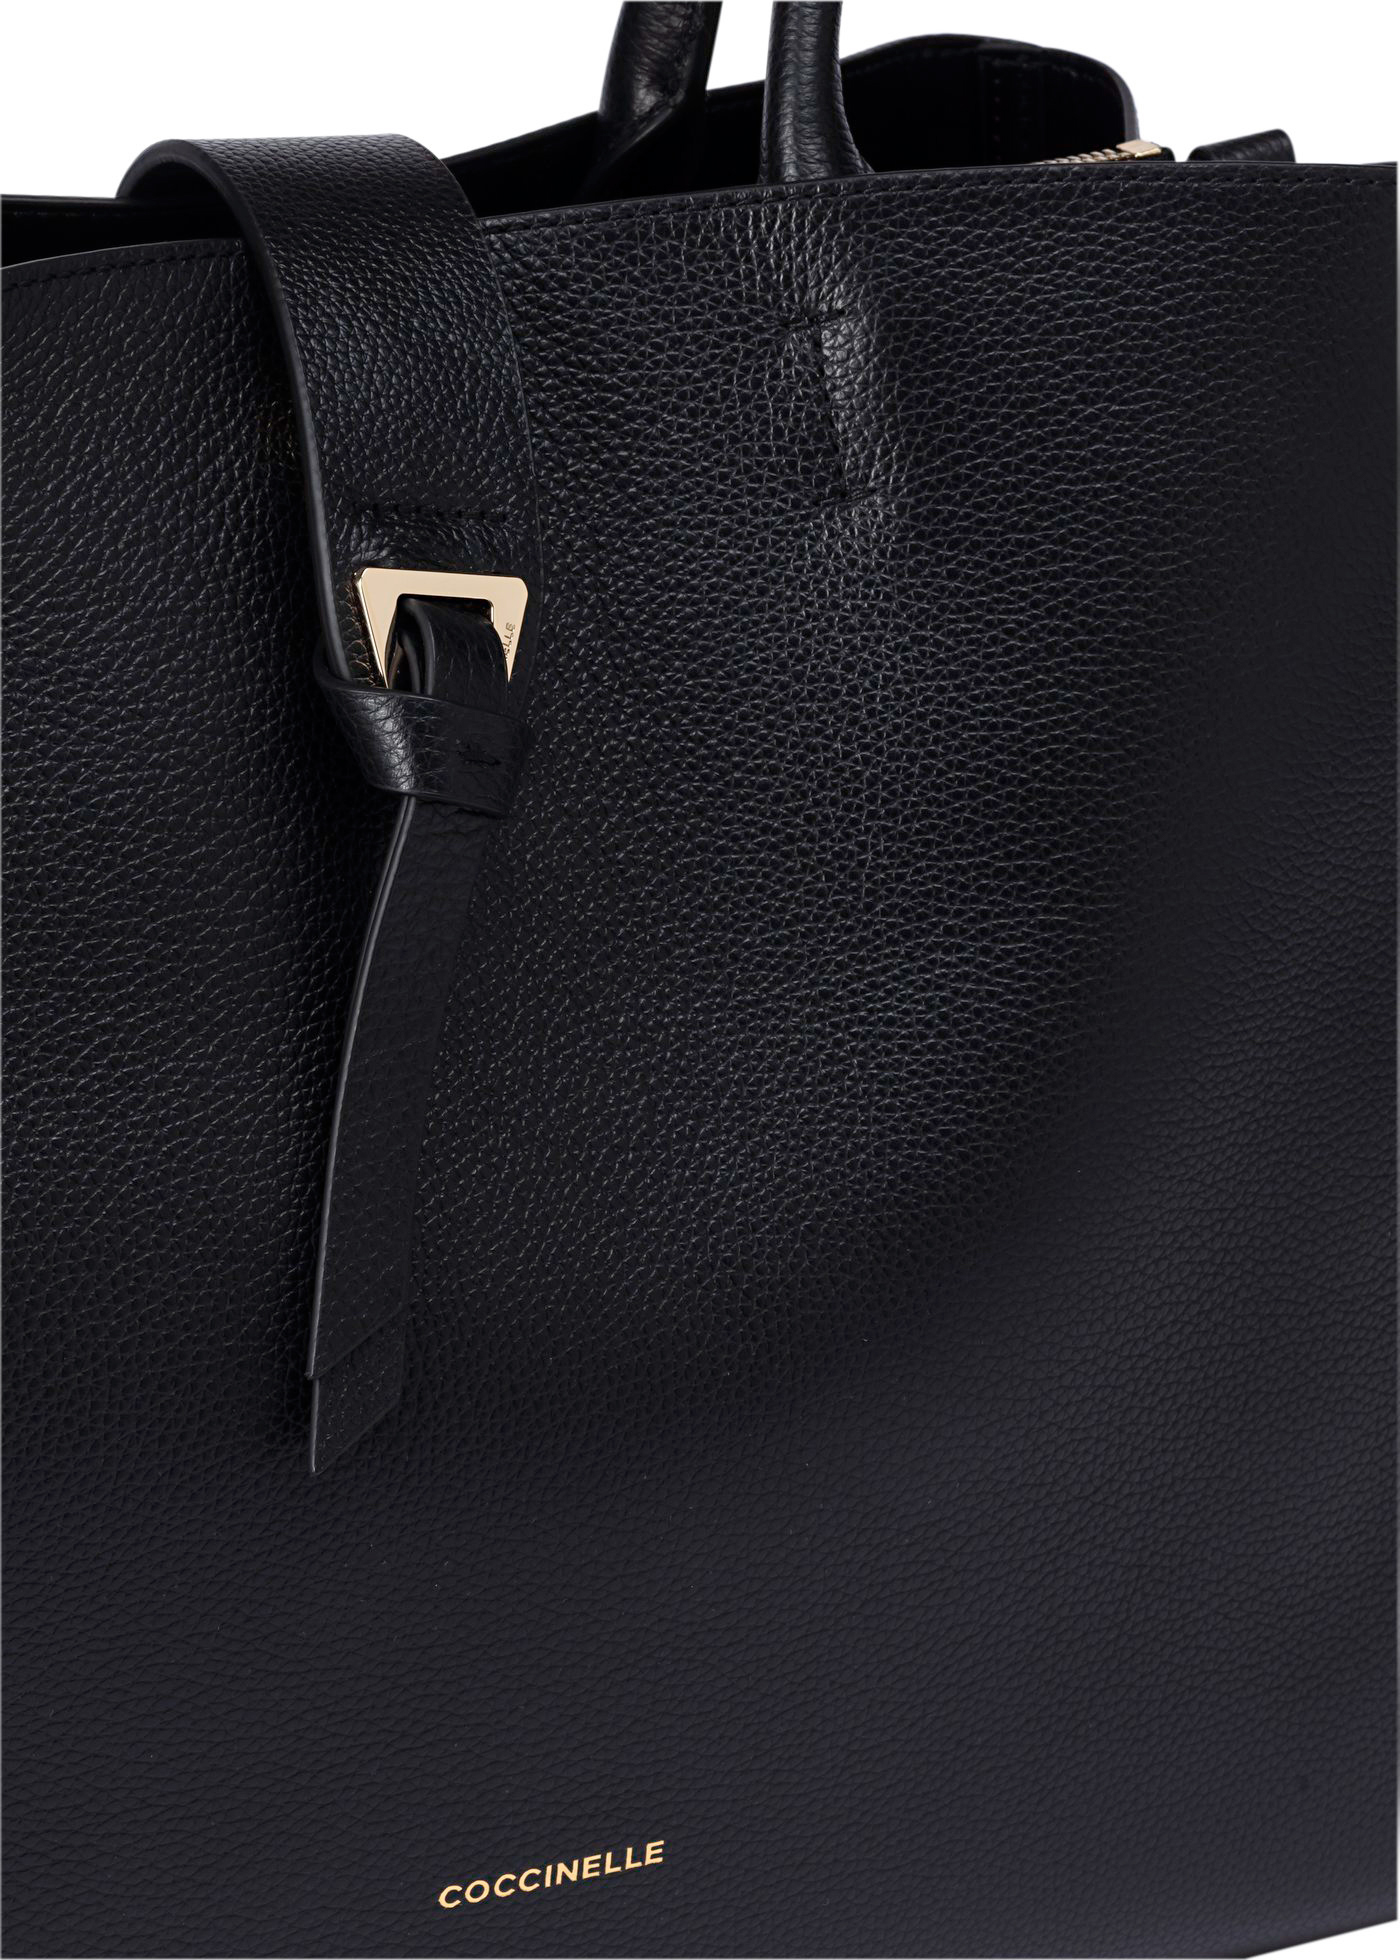 ALBA Business Tote image number 2